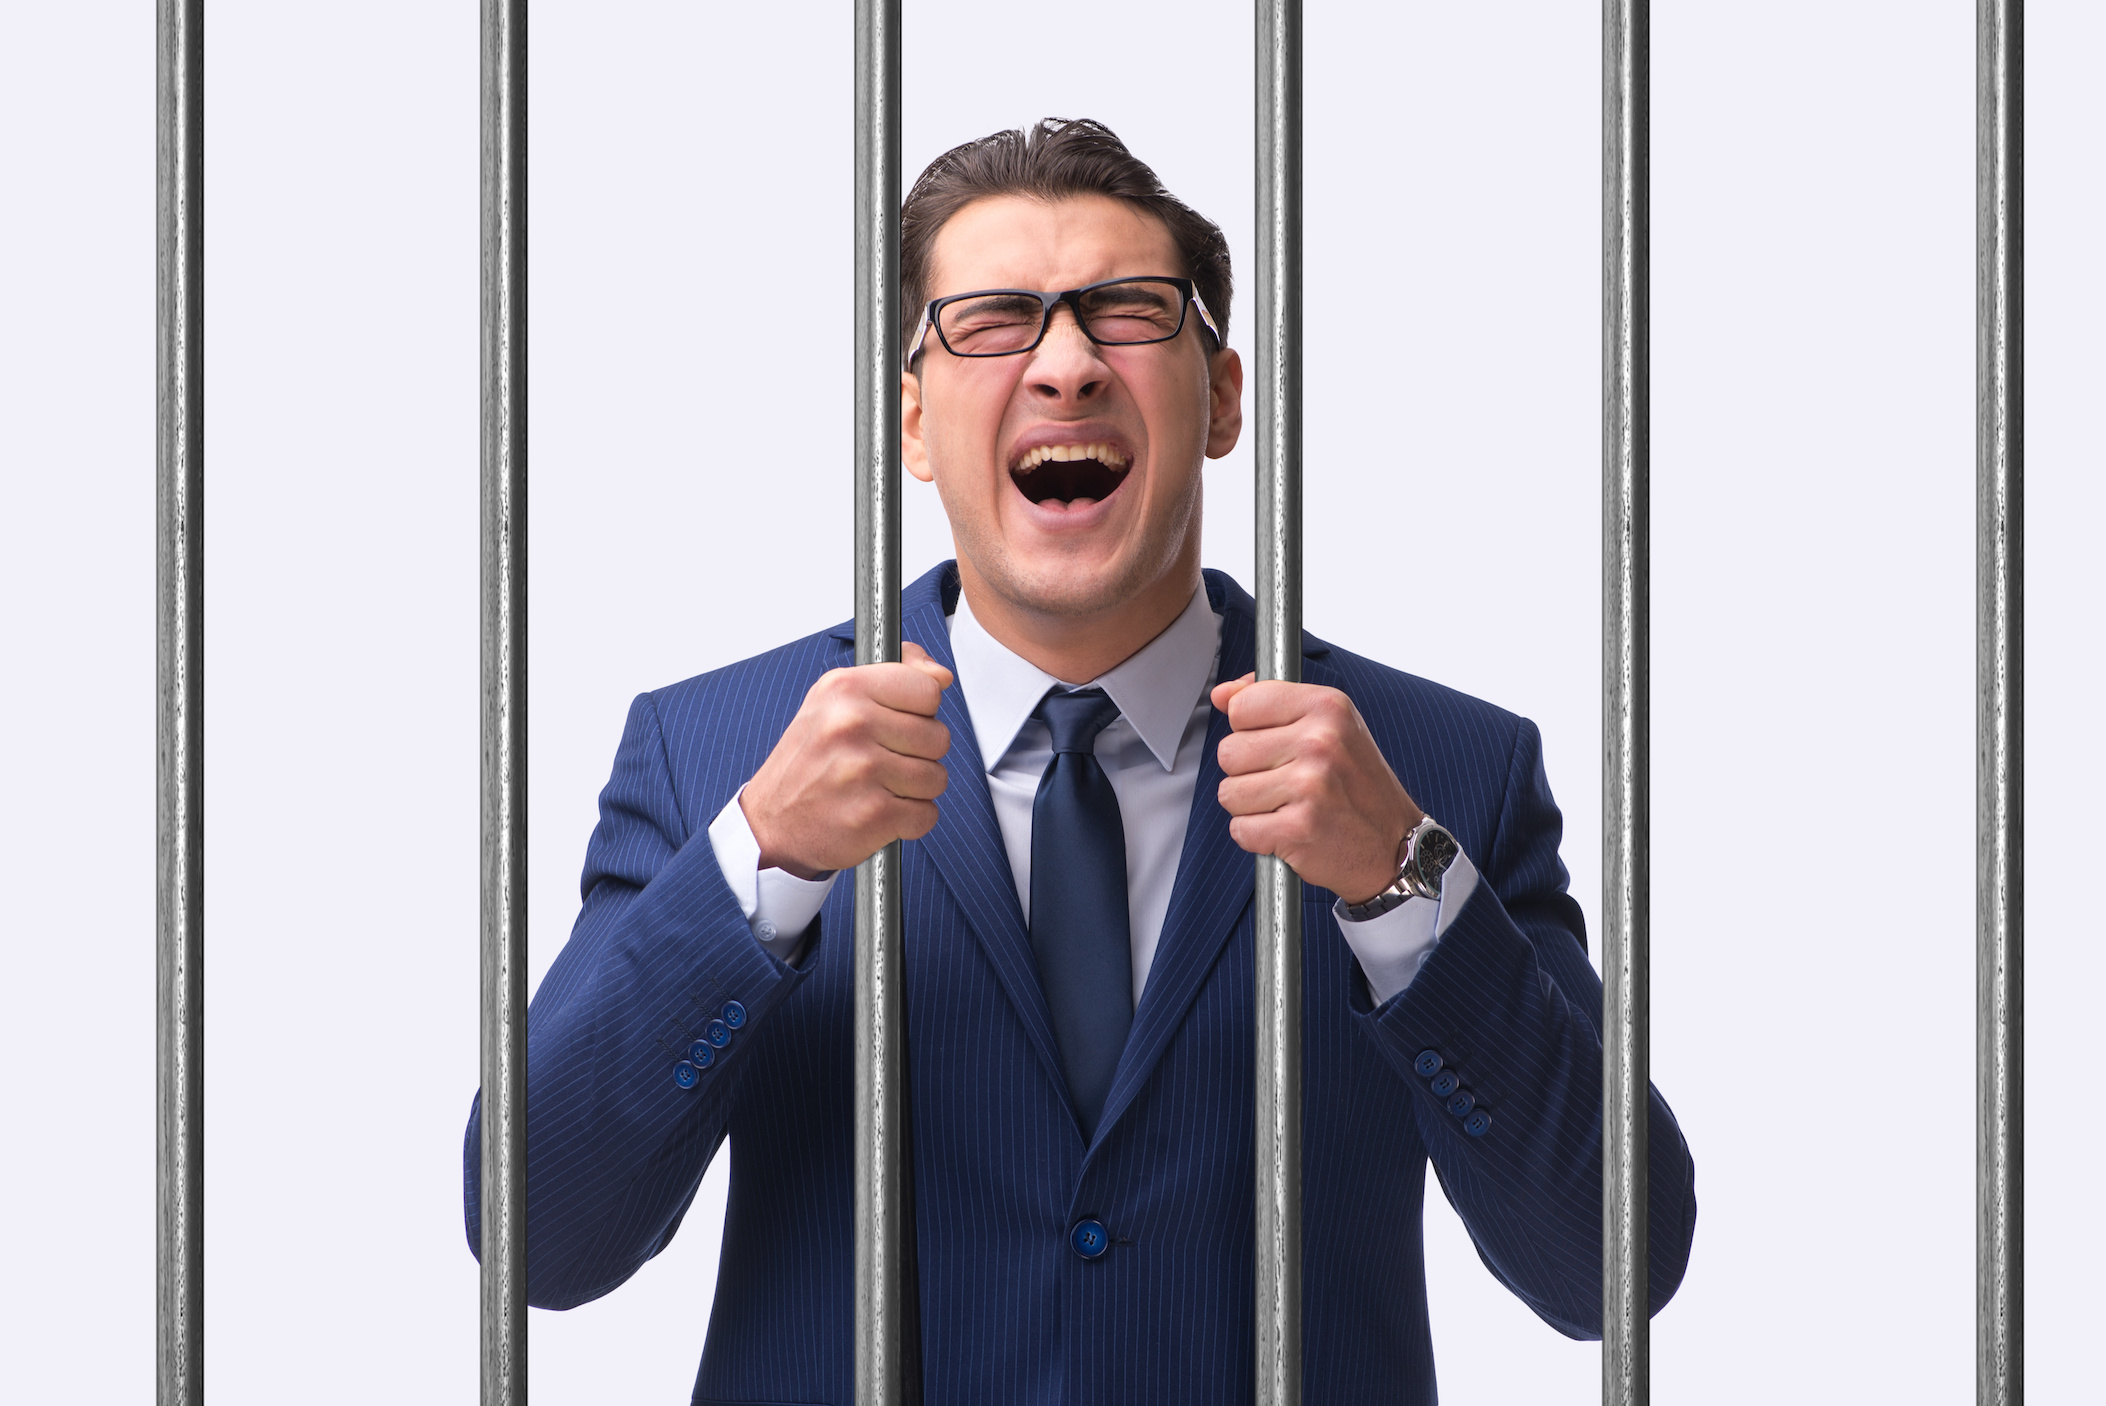 management blog - techniques to cage the chimp as a manager